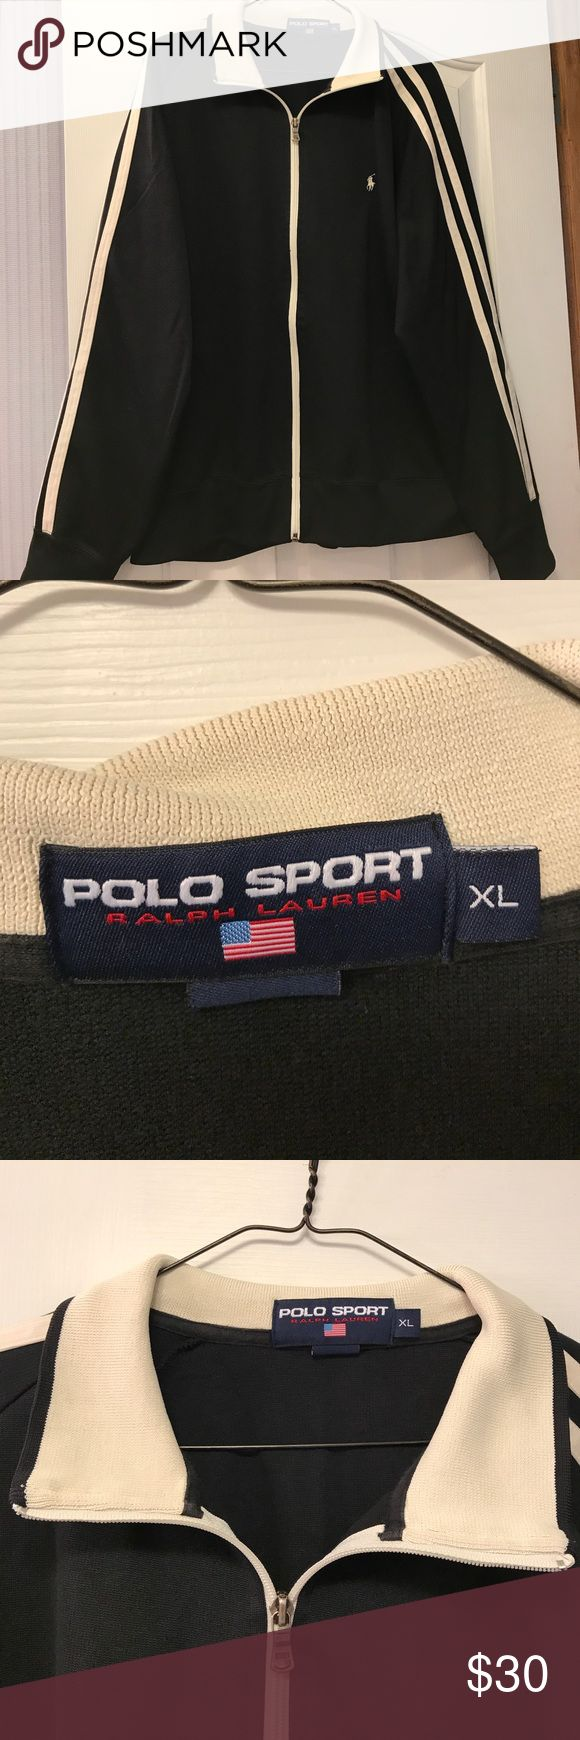 Polo sport jacket for men Black jacket with ivory stripes down outside of arms and ivory collar. Zippered front with deep side pockets. In excellent condition. Worn a few times. No stains, rips or odor. polo Sport Jackets & Coats Lightweight & Shirt Jackets